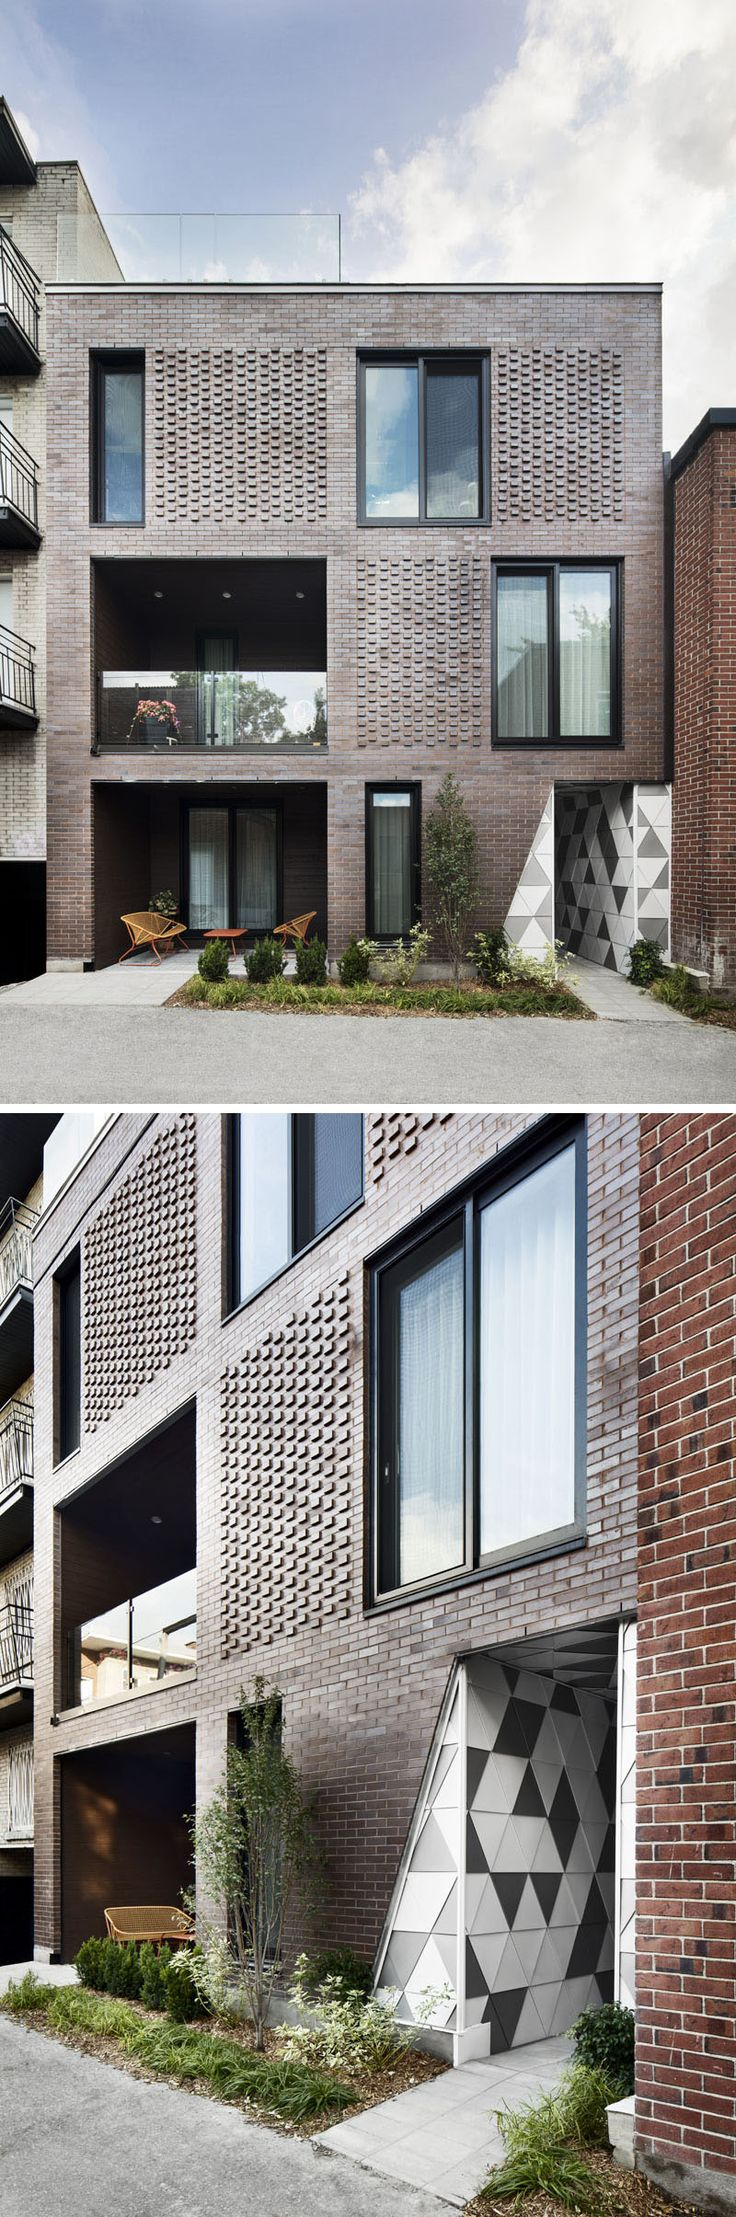 ADHOC architectes have designed a small, brick residential building in Montreal, Canada, that has geometric entryway and is inspired by a Geode. #Architecture #BuildingDesign